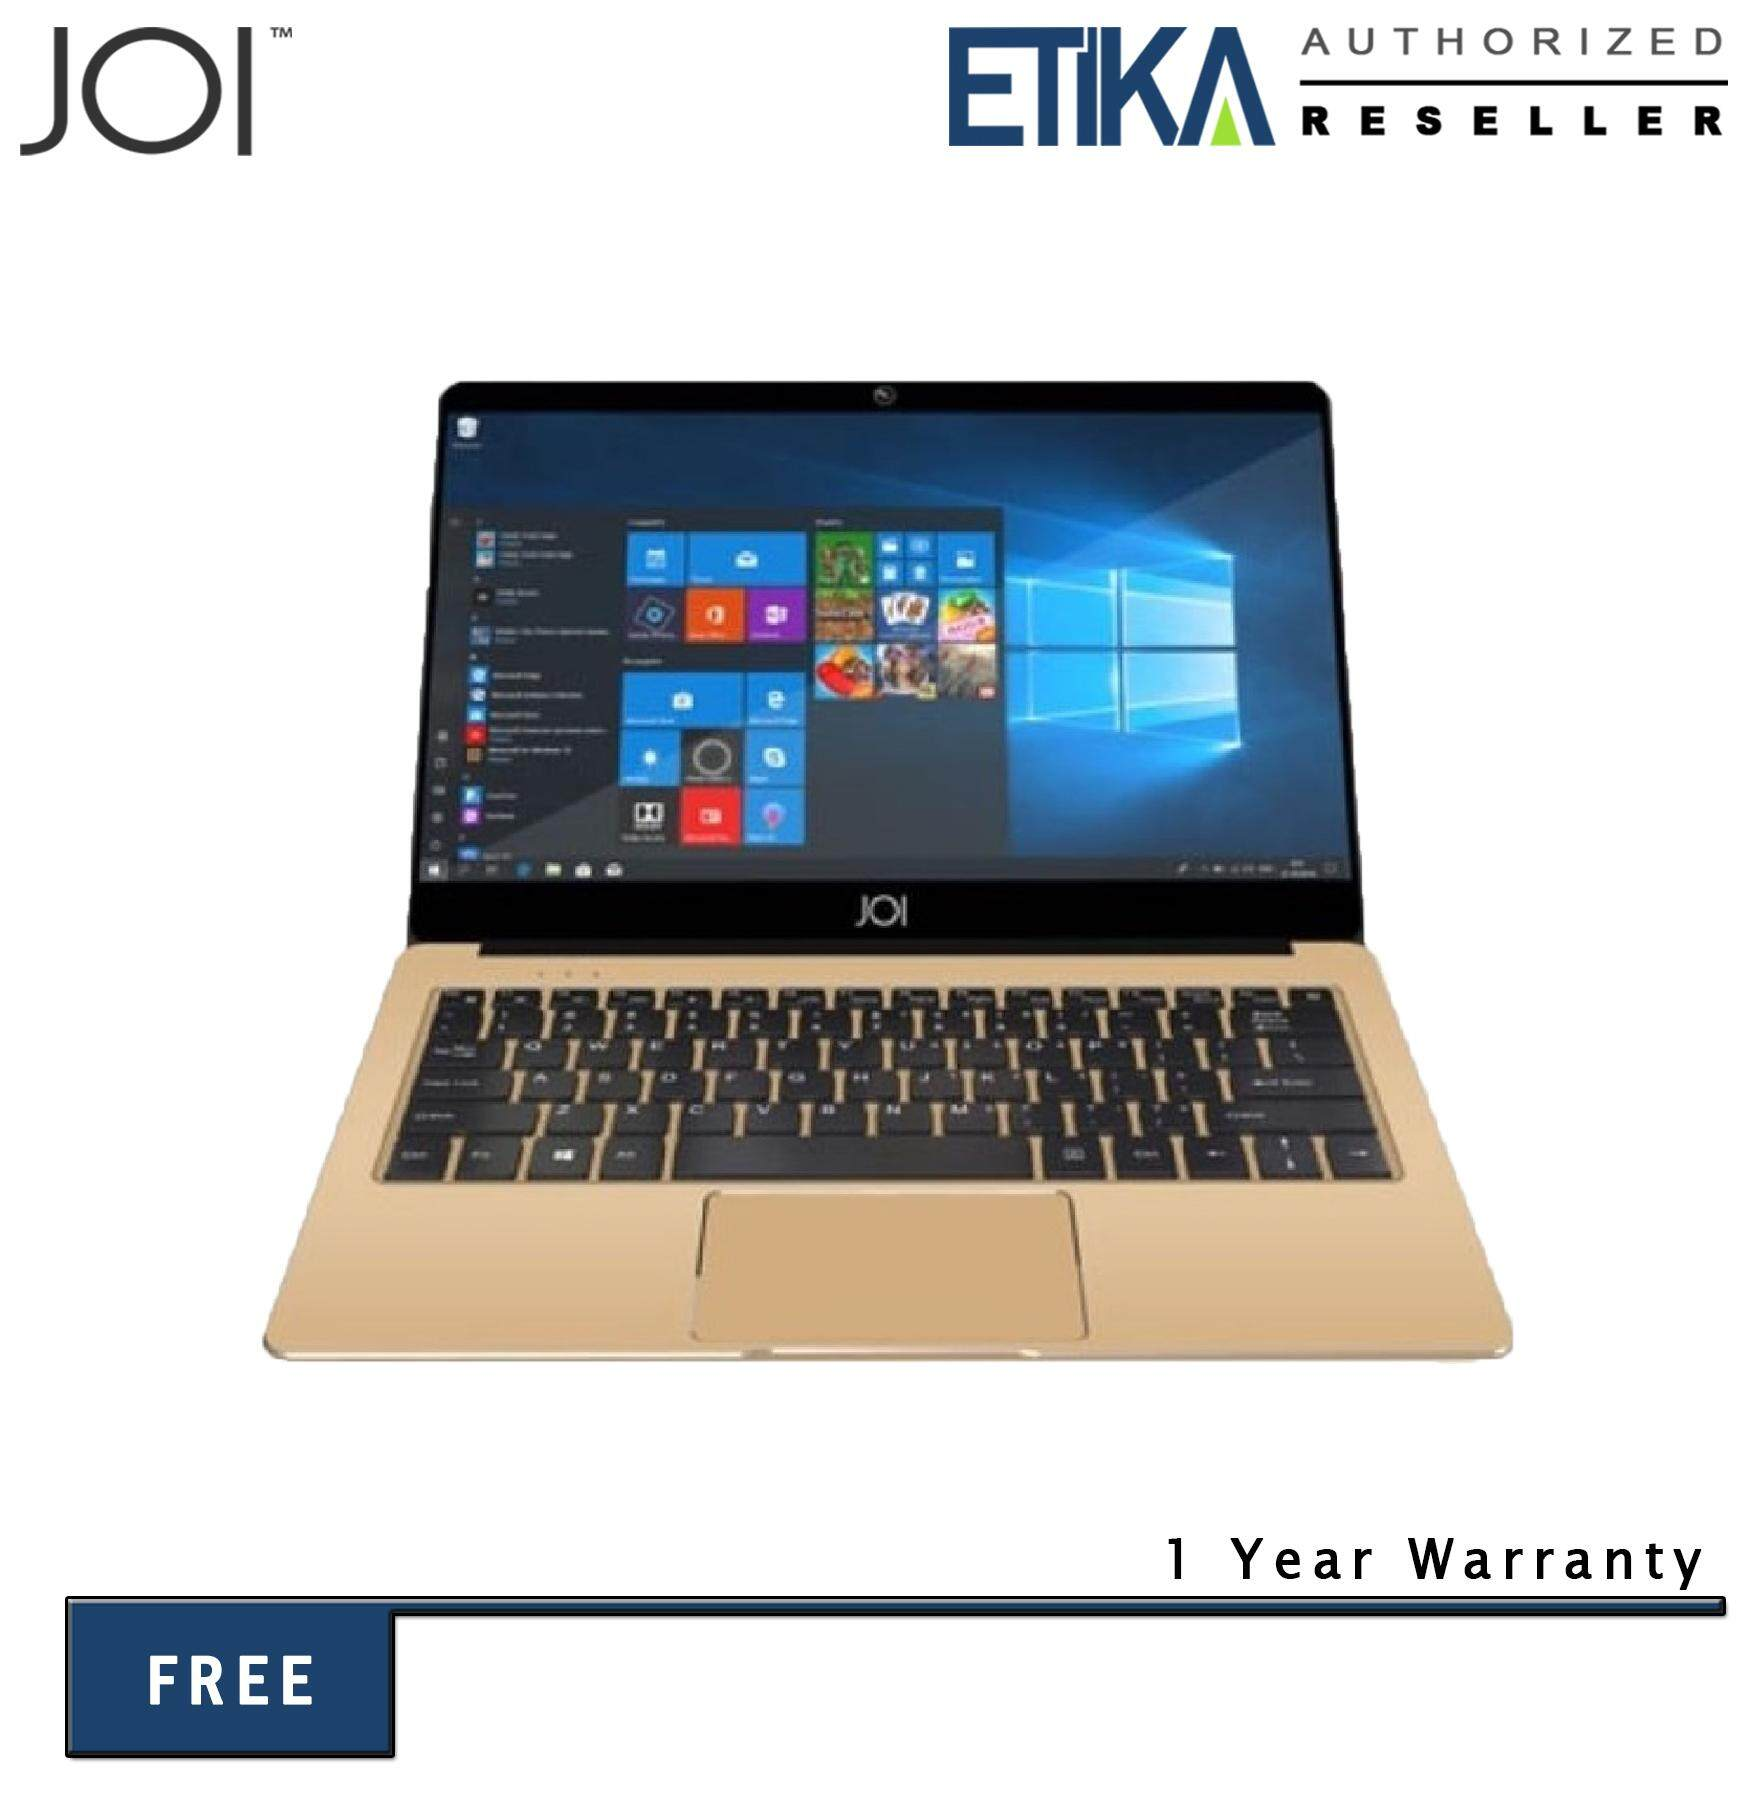 JOI Book 80 12.5 FHD Gold Laptop (Cel N3350/ 4GB/ 64GB/ Intel Graphics/ W10) Malaysia